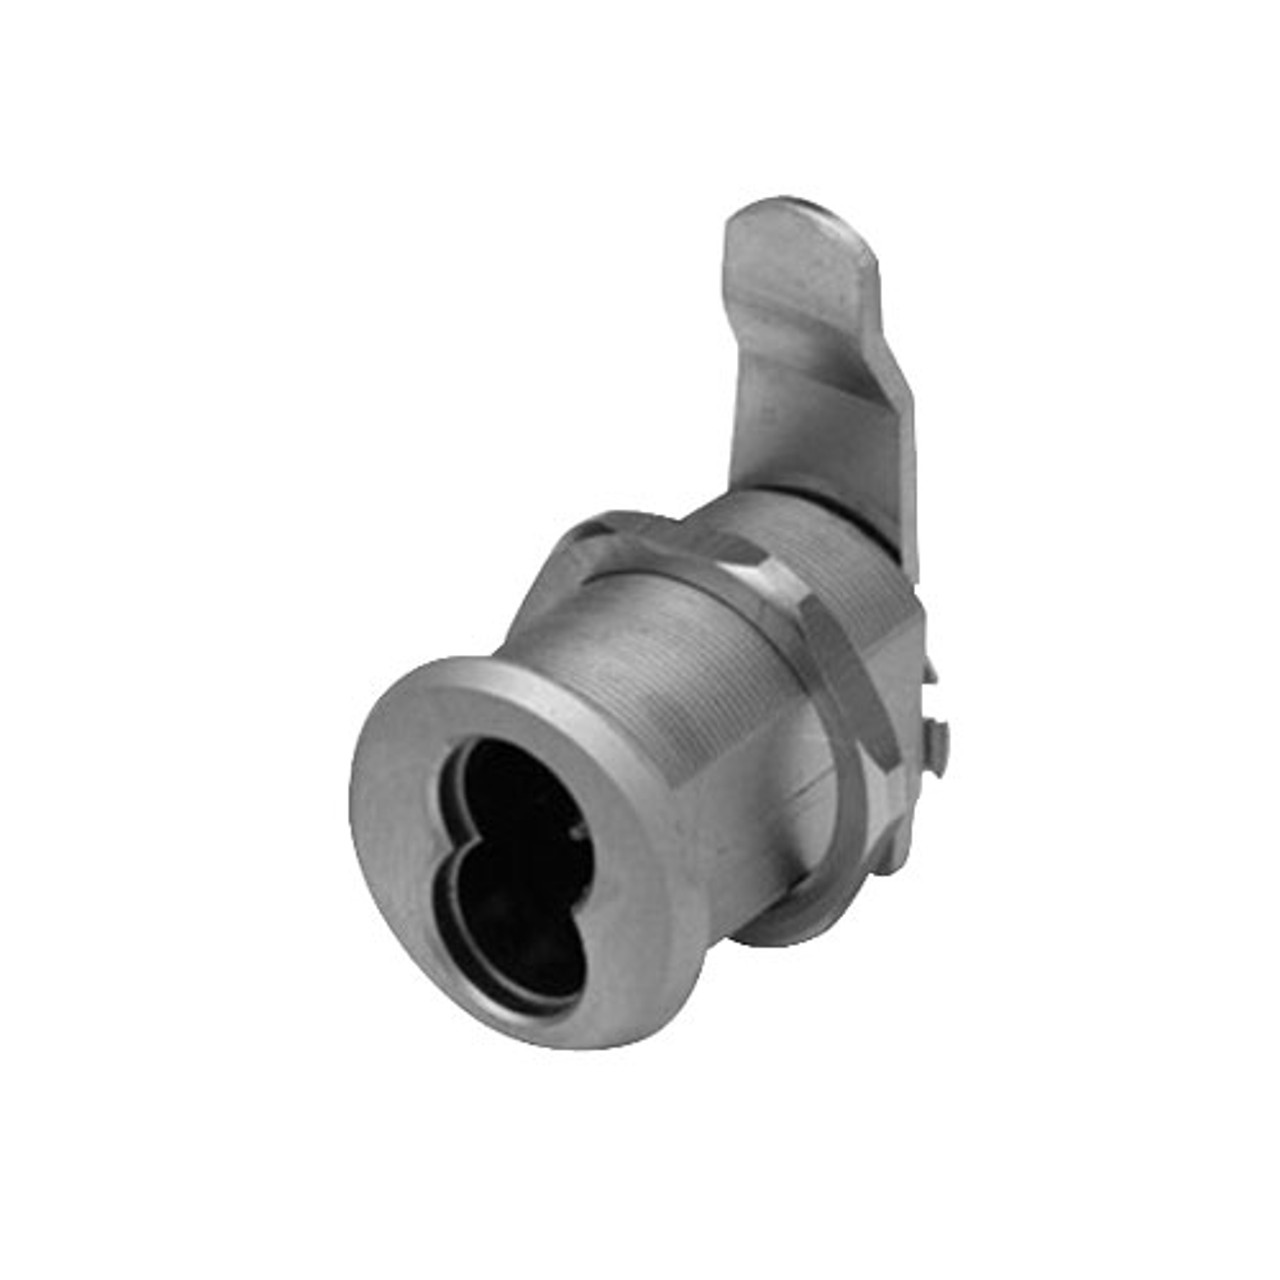 Olympus 720LM/DM-26D-IC Cam Lock for Removable Core in Satin Chrome